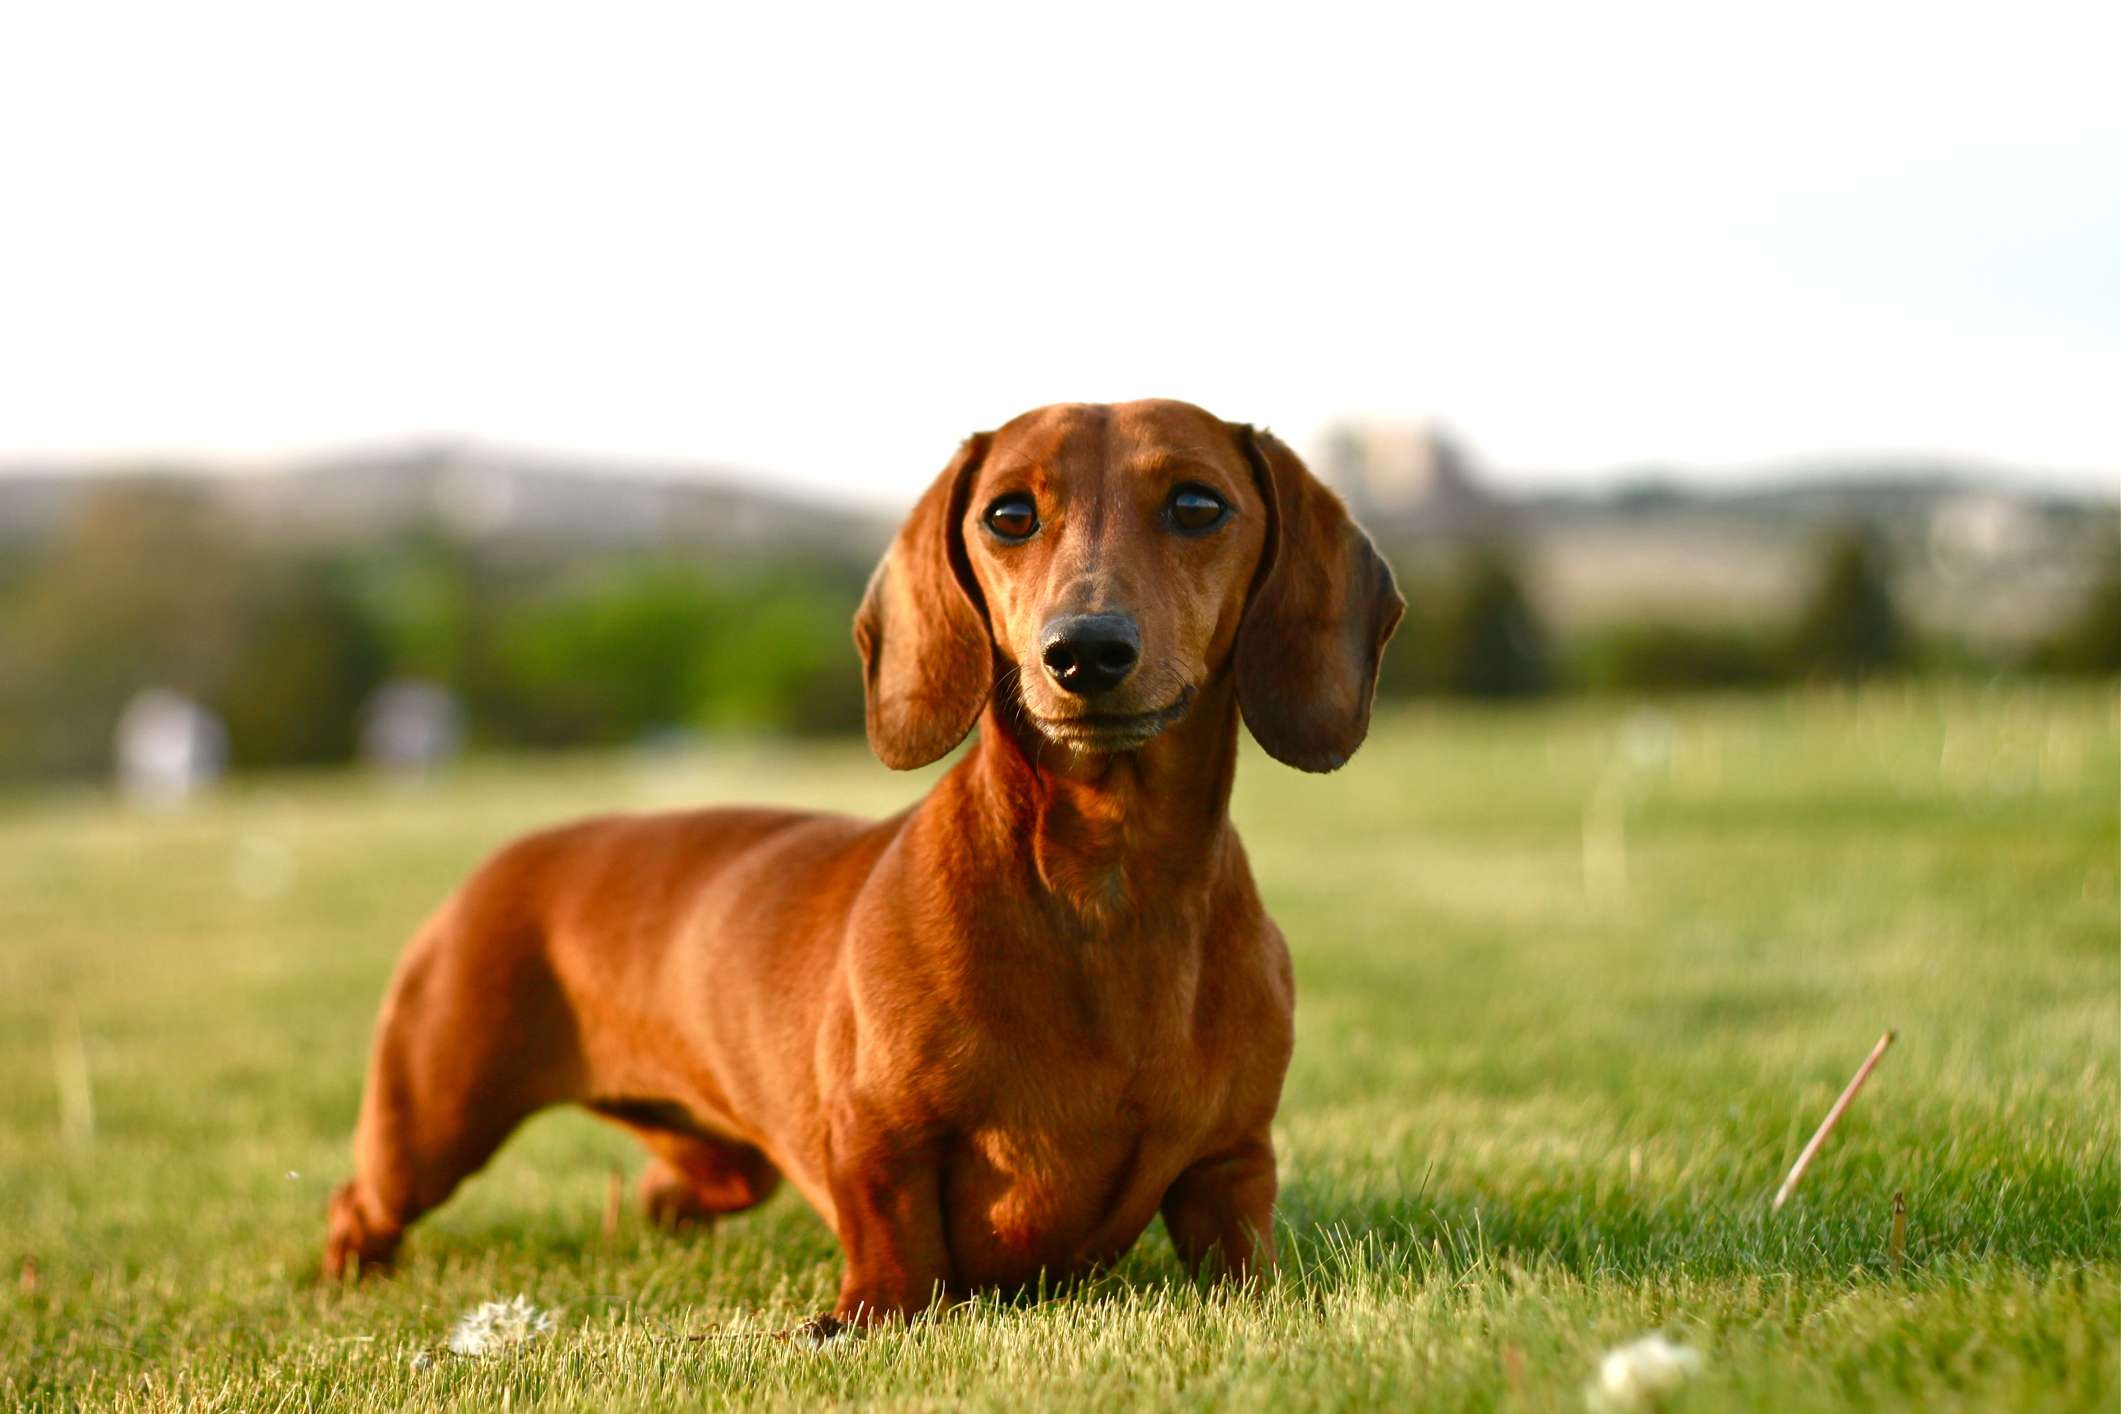 Smooth-haired dachshund standing on grass